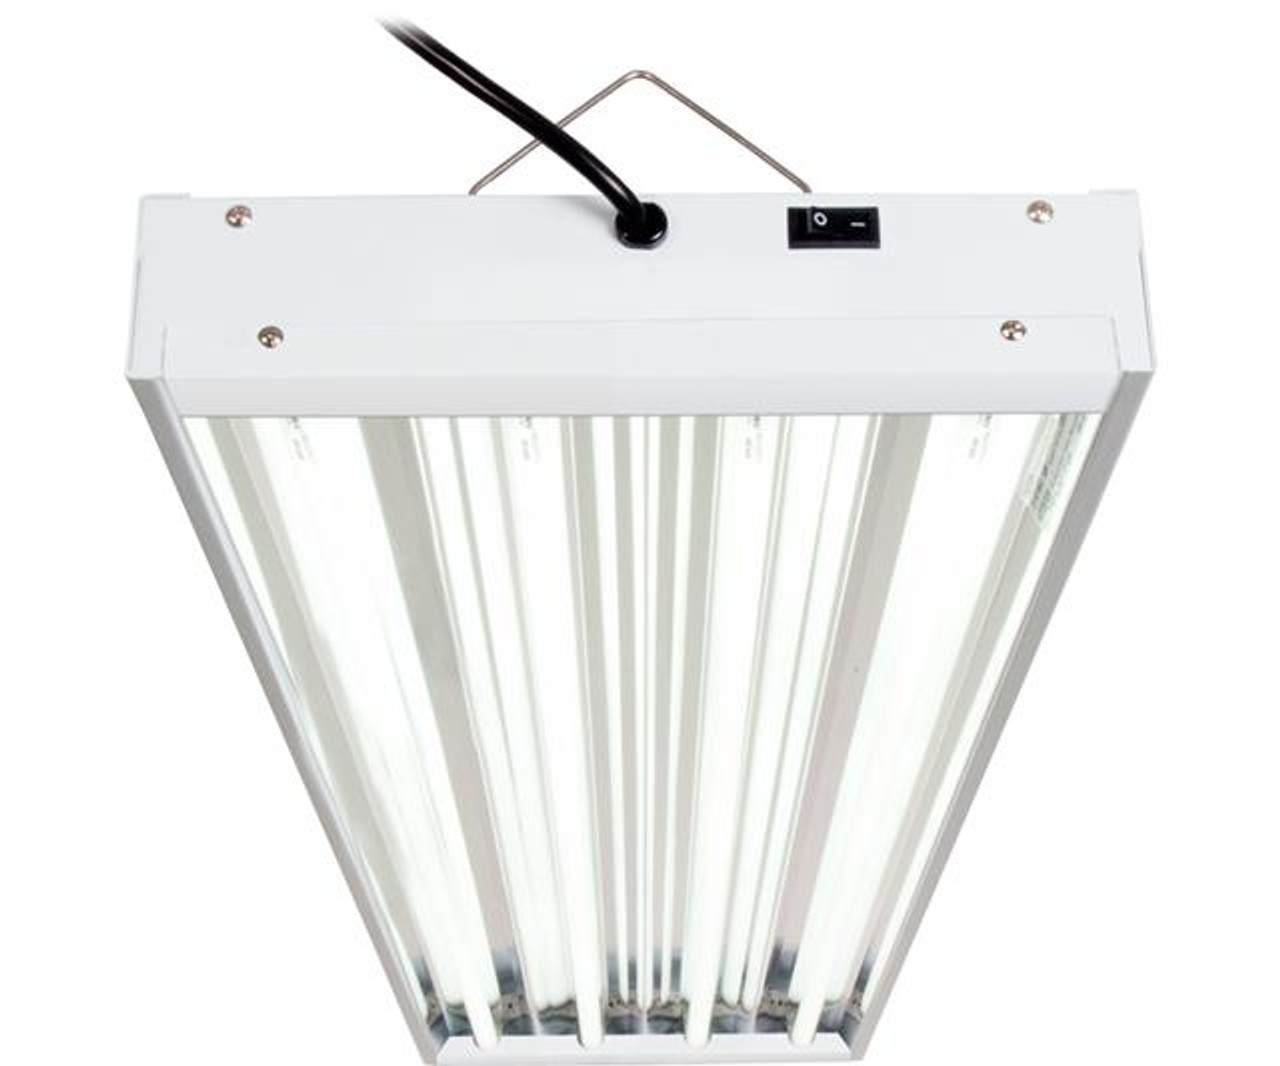 AgroBrite - T5 216W 4' 4-Tube Fixture with Lamps